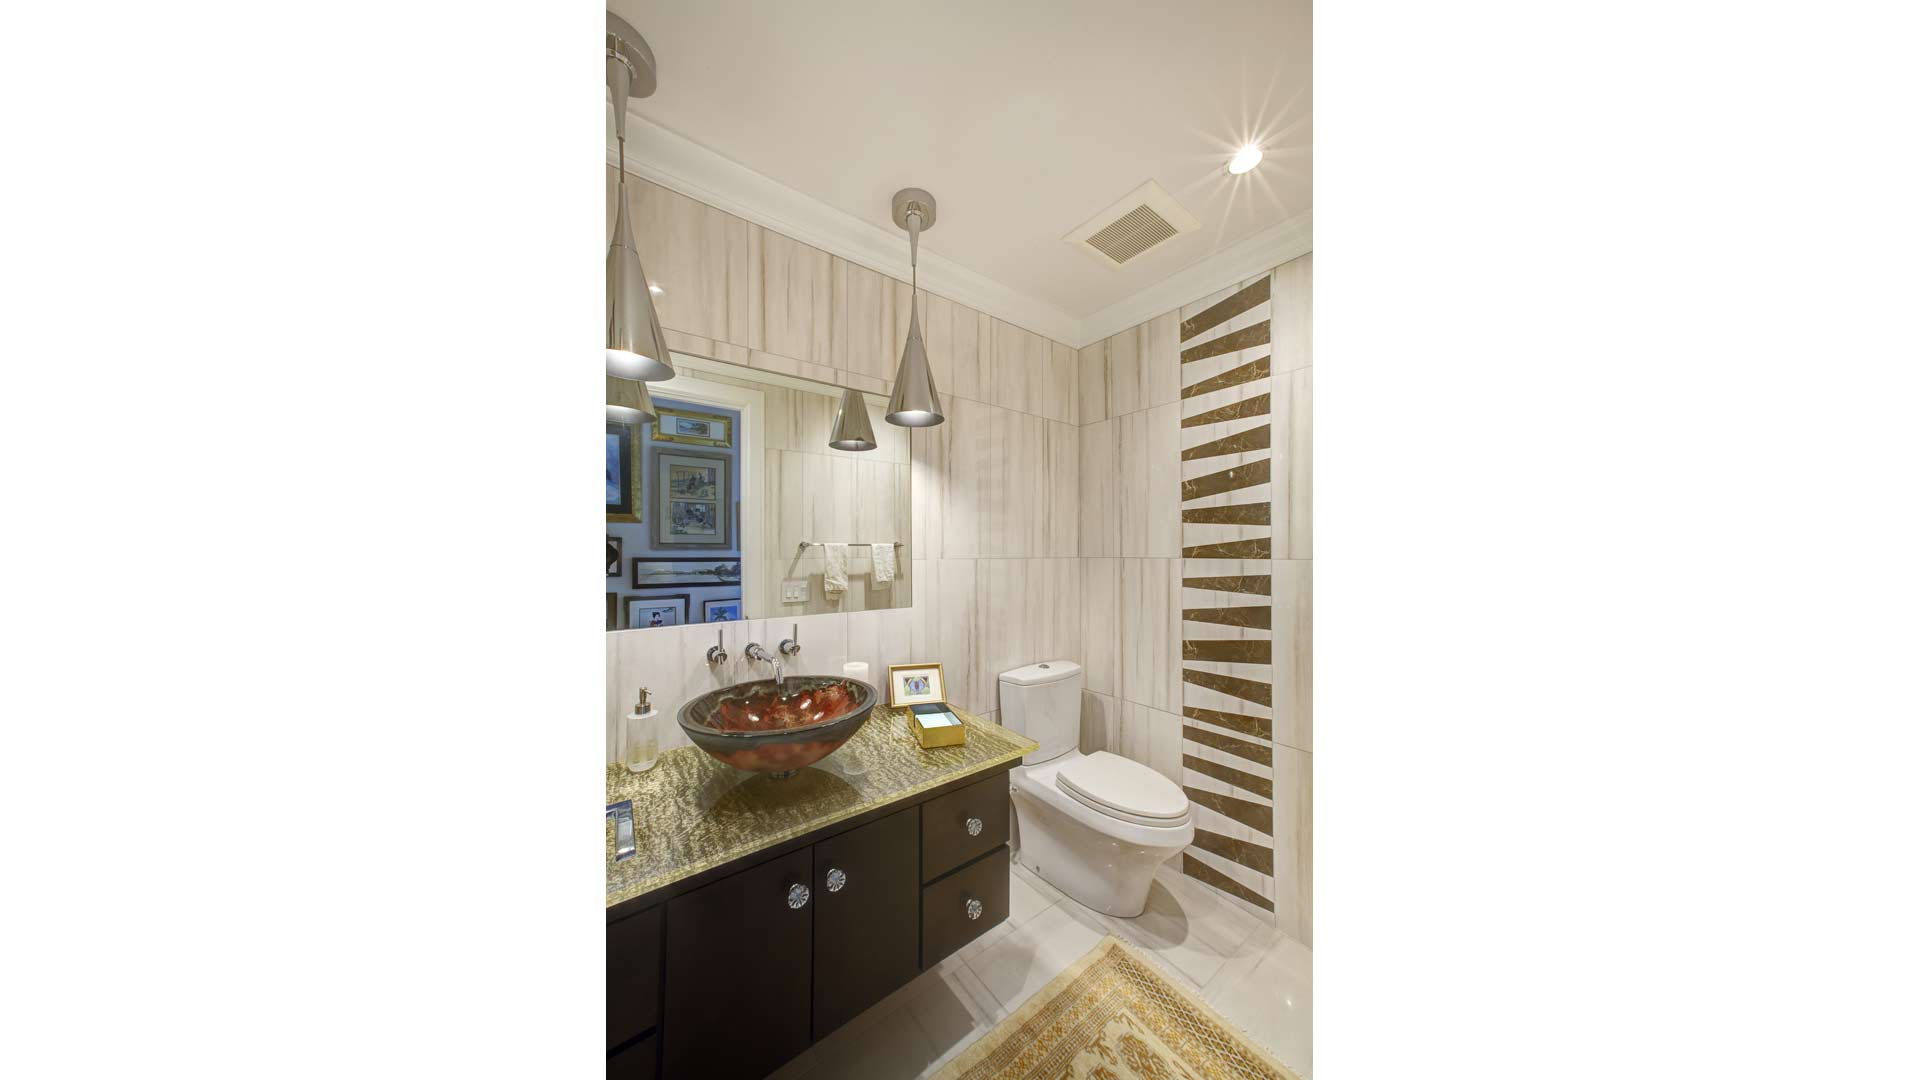 Powder Room - Eclectic Modern Interior - Indianapolis, IN